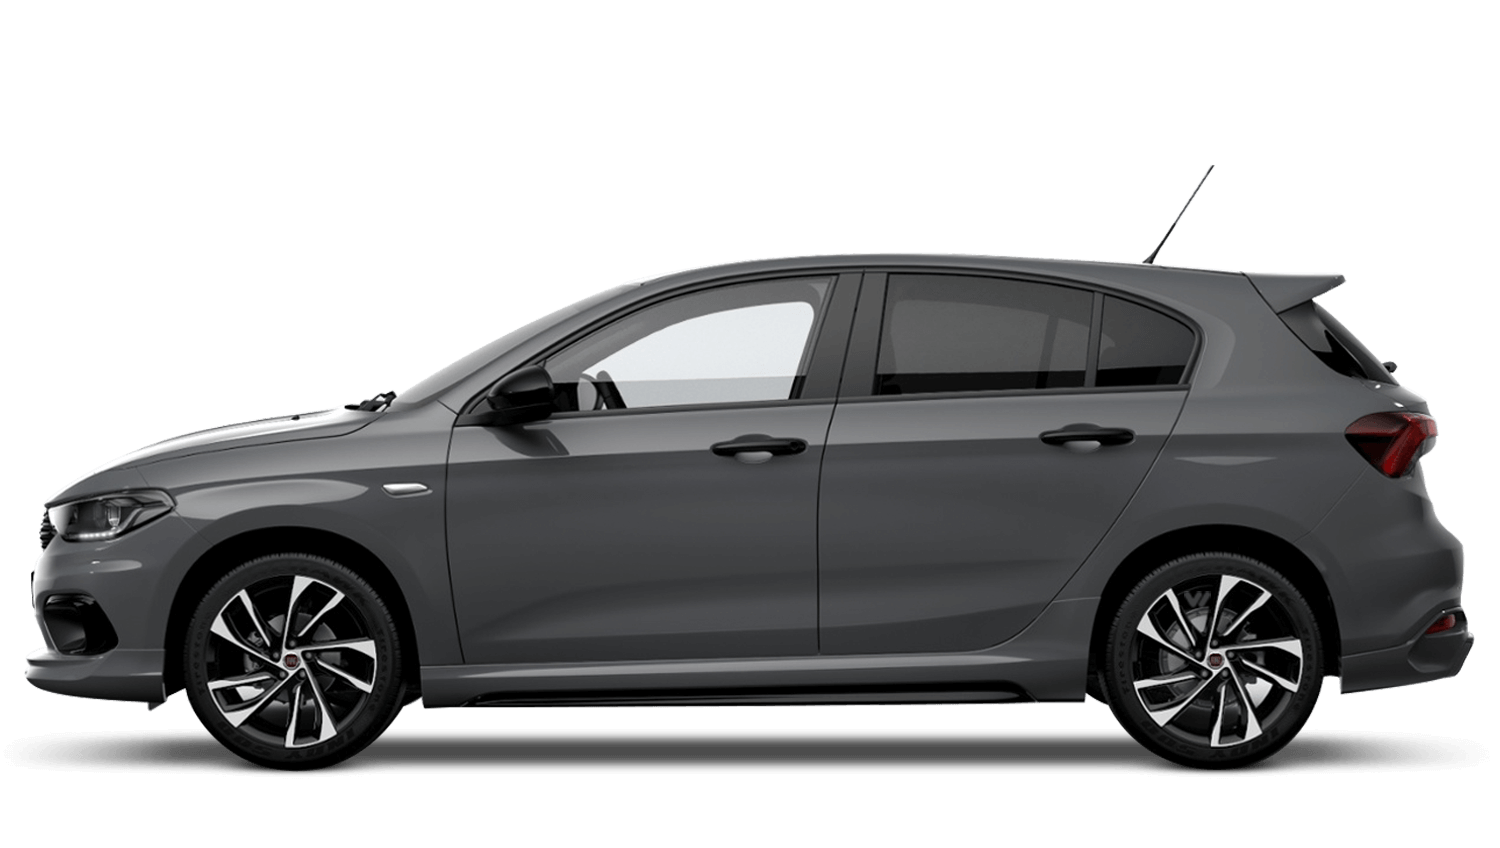 Street Grey with Black Roof (Bi-Colour) FIAT Tipo Hatchback